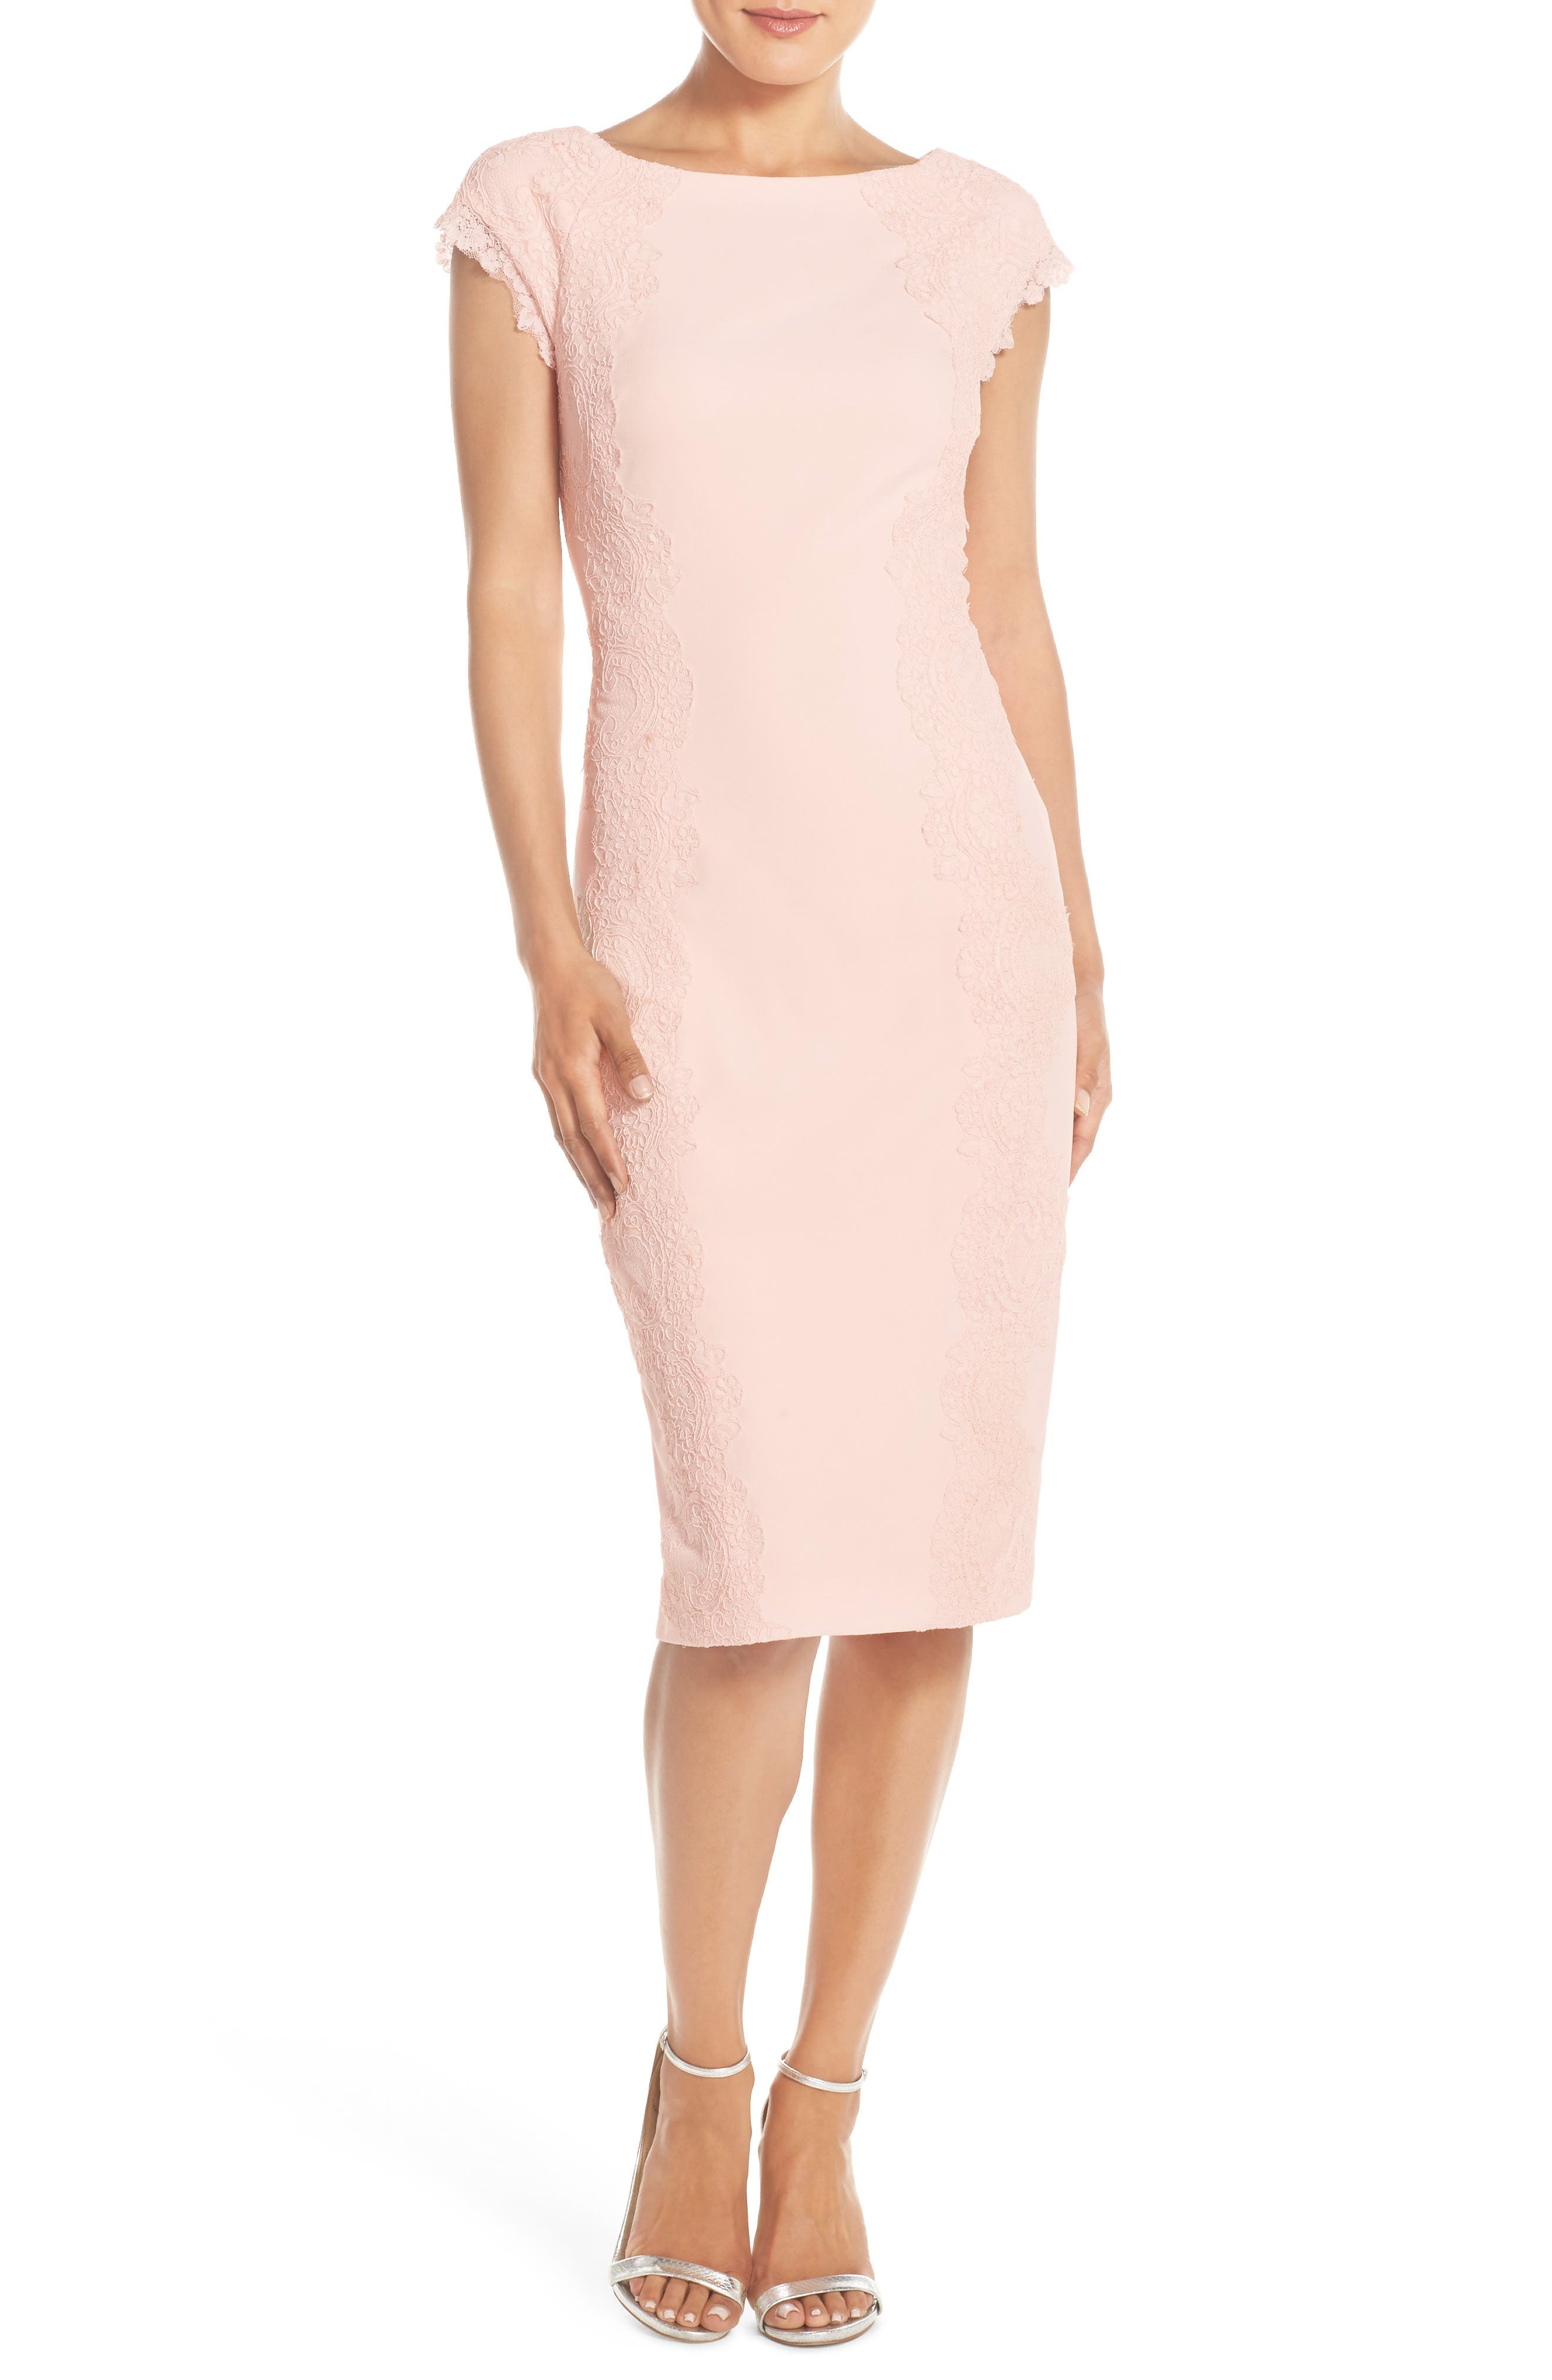 Lace Detail Crepe Sheath Dress,                             Alternate thumbnail 8, color,                             BLUSH